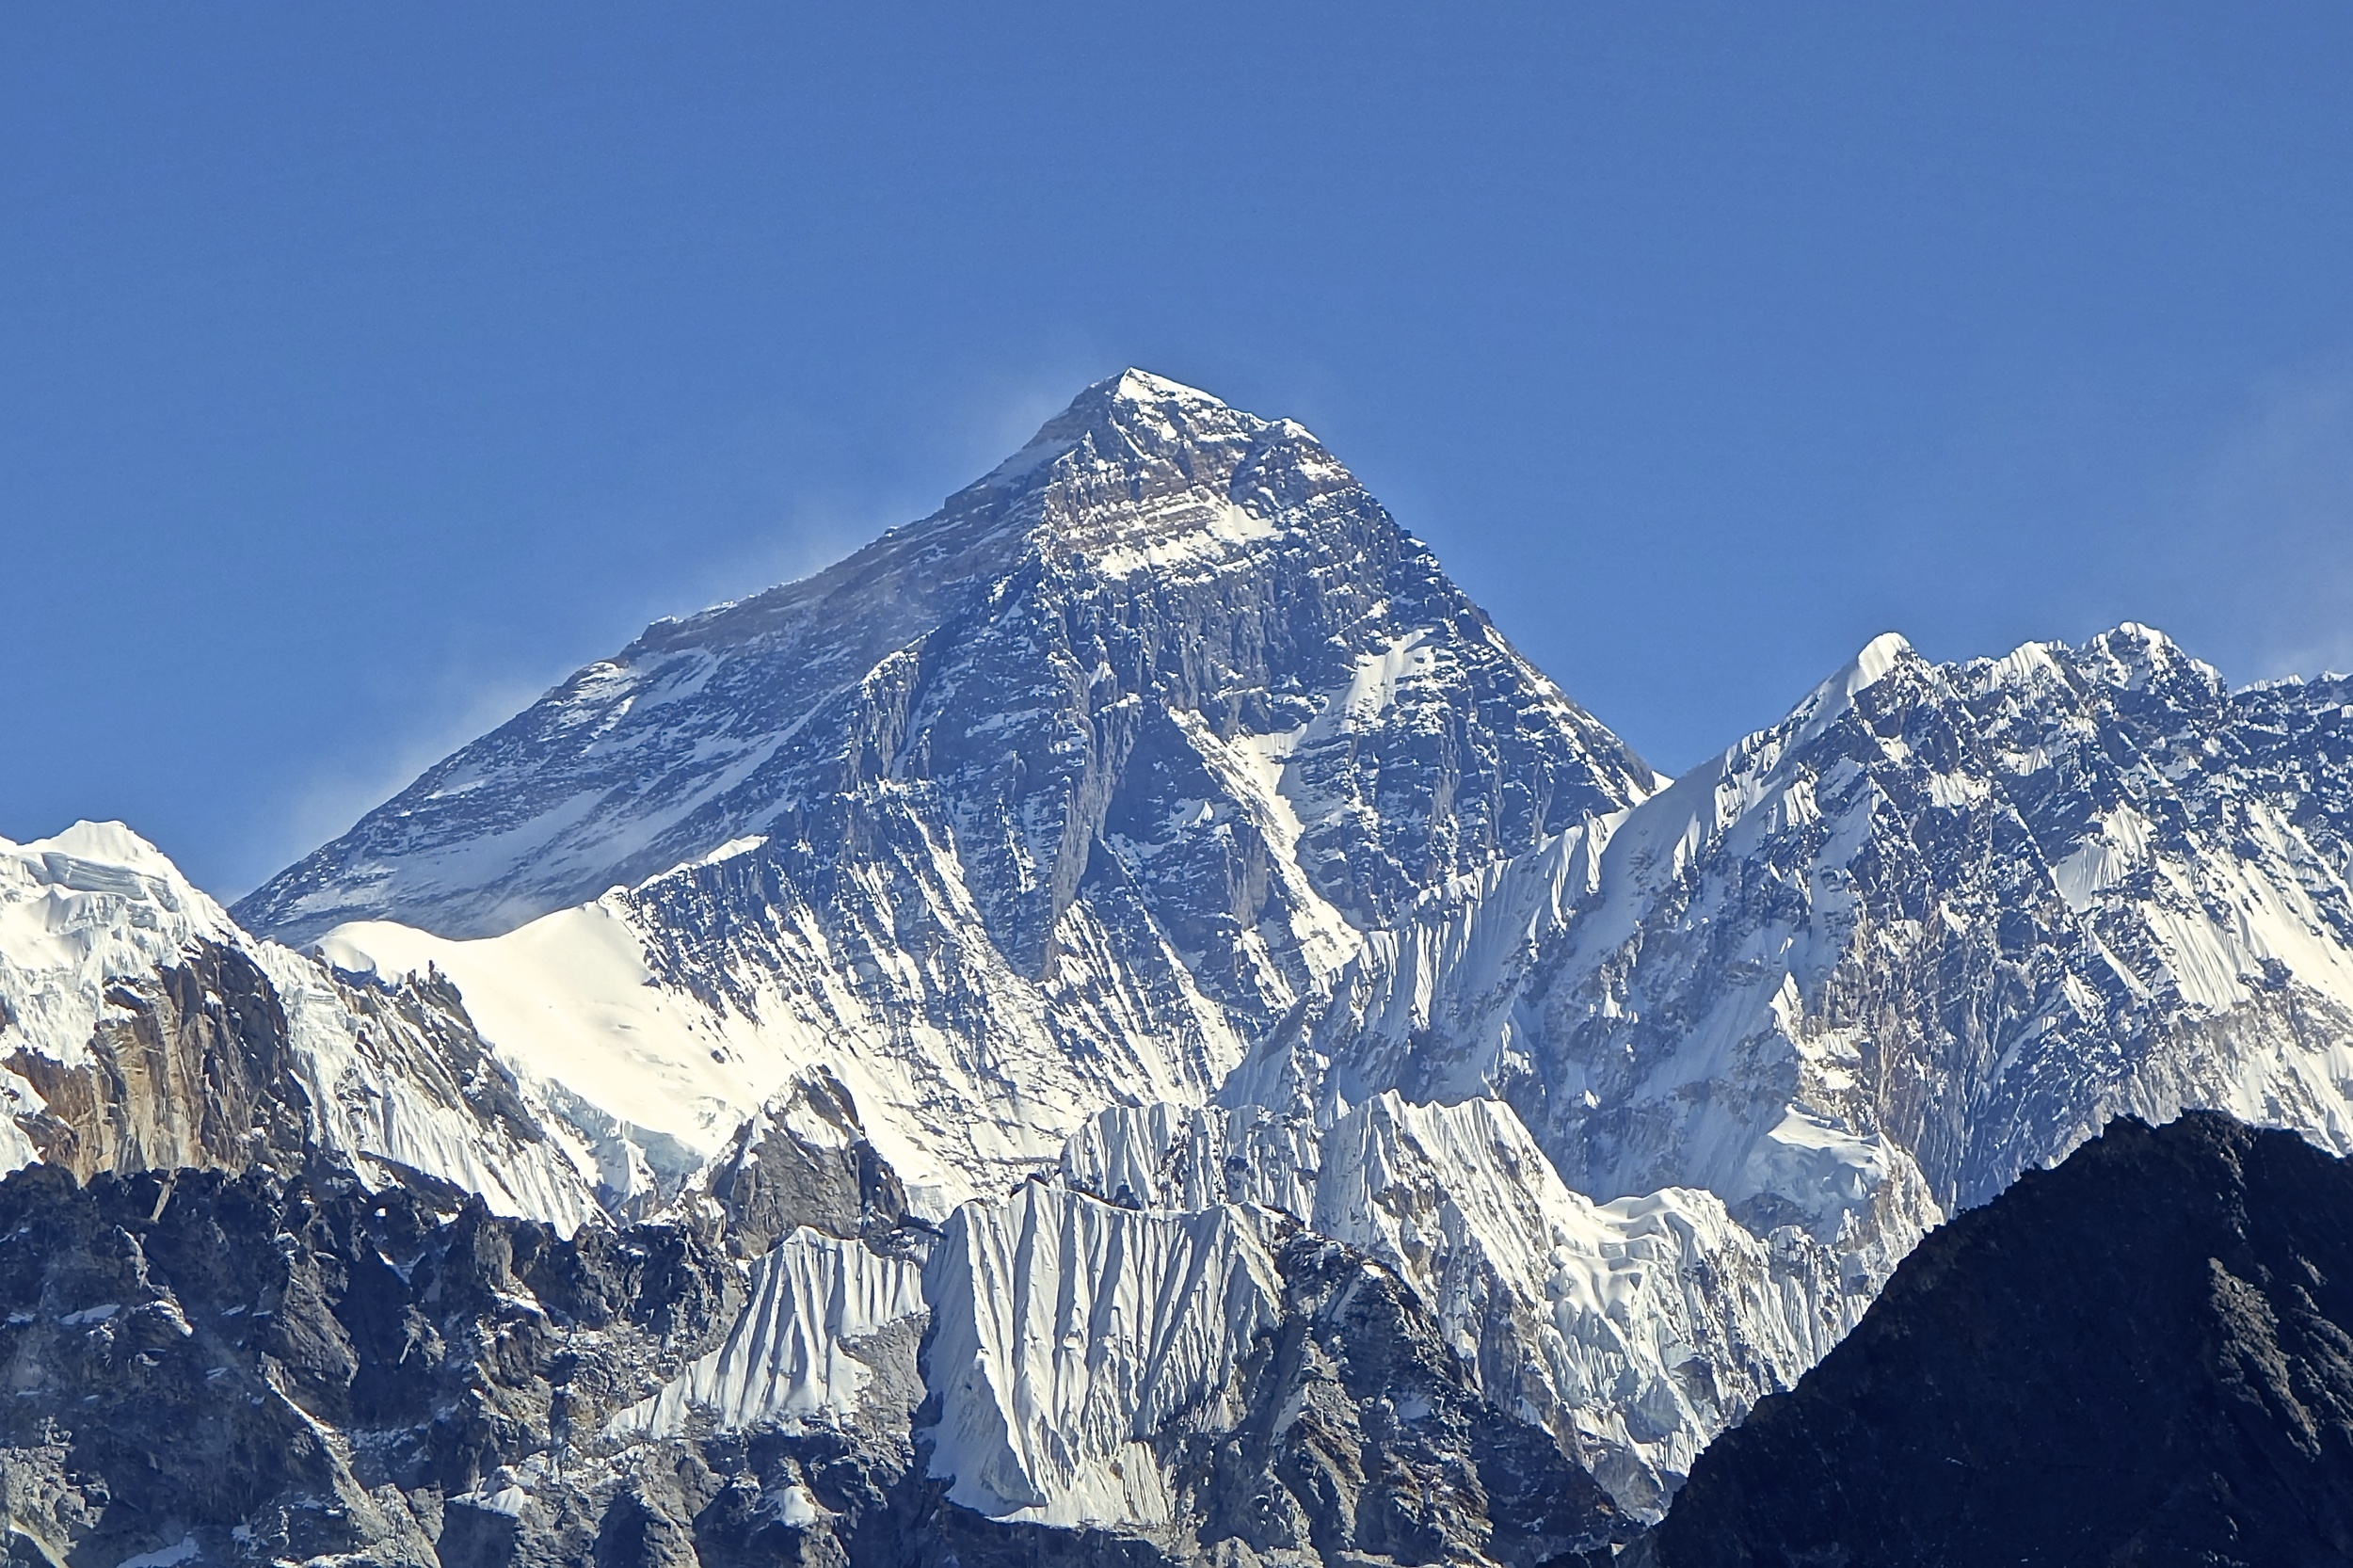 Mt._Everest_from_Gokyo_Ri_November_5_2012